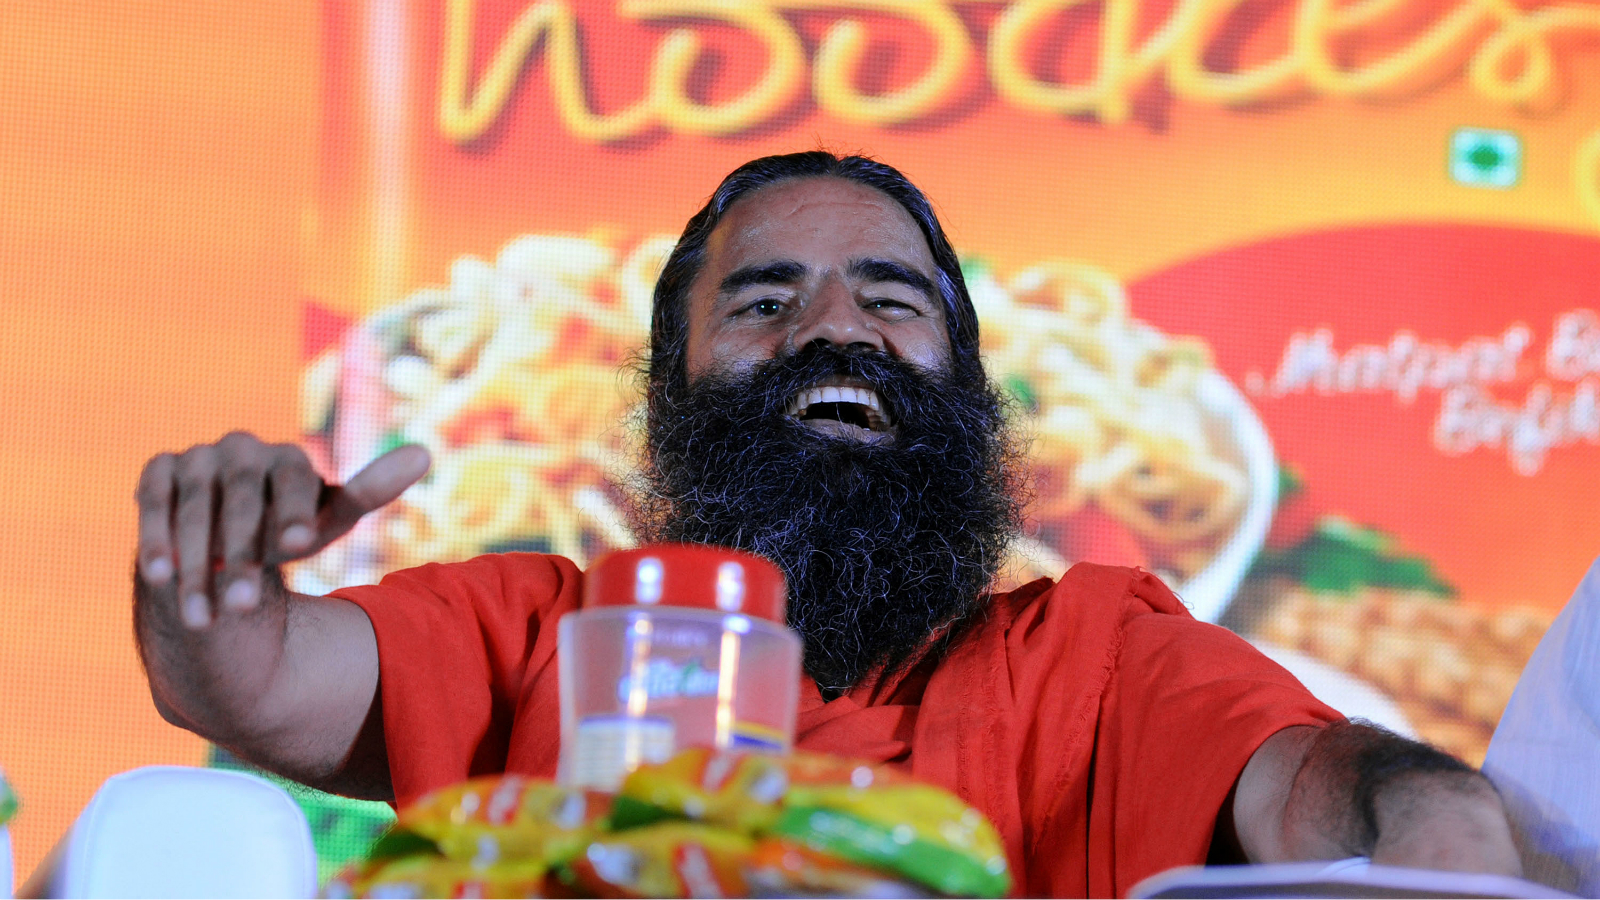 Yoga guru Baba Ramdev speaks at a press conference after launching Patanjali Atta Noodle in New Delhi, India, 16 November 2015. The new product would cost 0.23 USD with no added lead or monosodium glutamate (MSG) and hit the market soon. Swiss food giant Nestle has also resumed the manufacture and sale of its Maggi brand instant noodles in India after it withdrew the product in June after India's Food Safety and Standards Authority said Maggi noodles contained 'unsafe and hazardous' levels of lead, a news reports said.